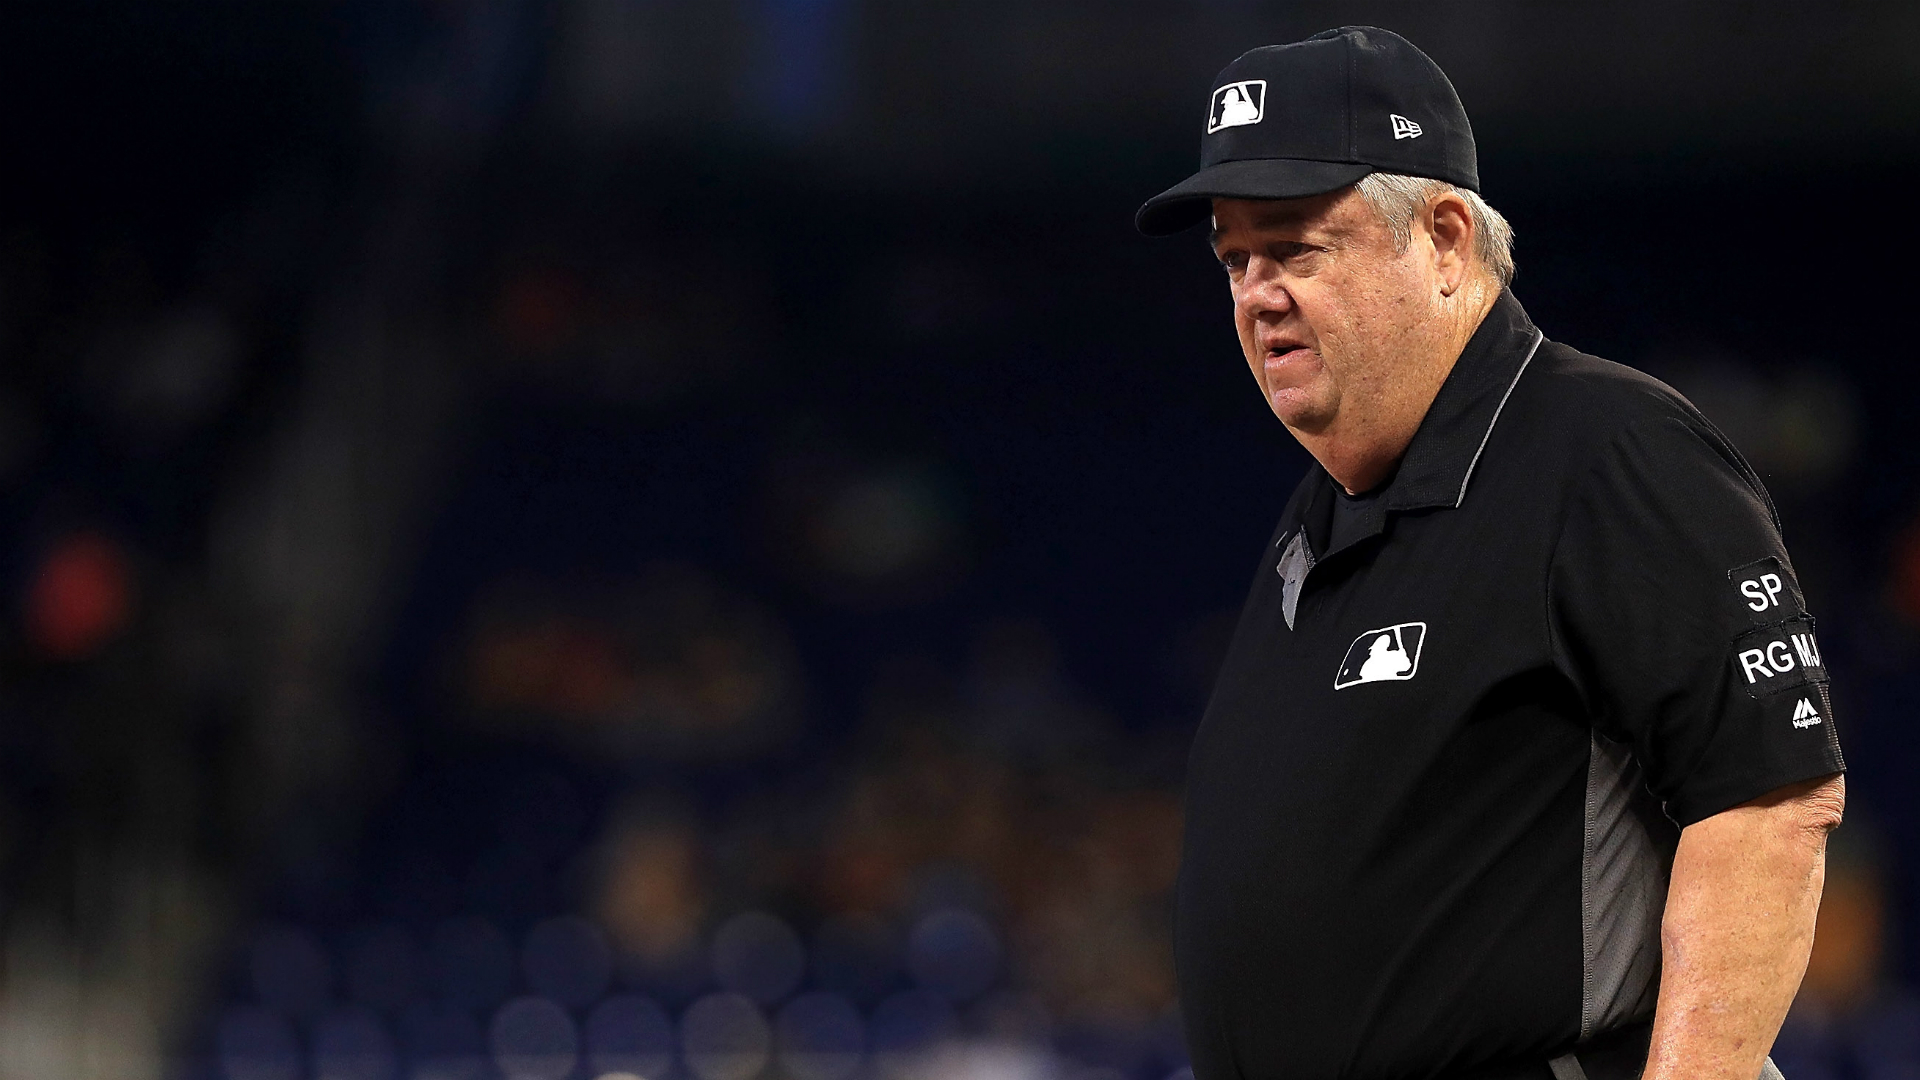 Umpires end protest after Major League Baseball commissioner agrees to meeting